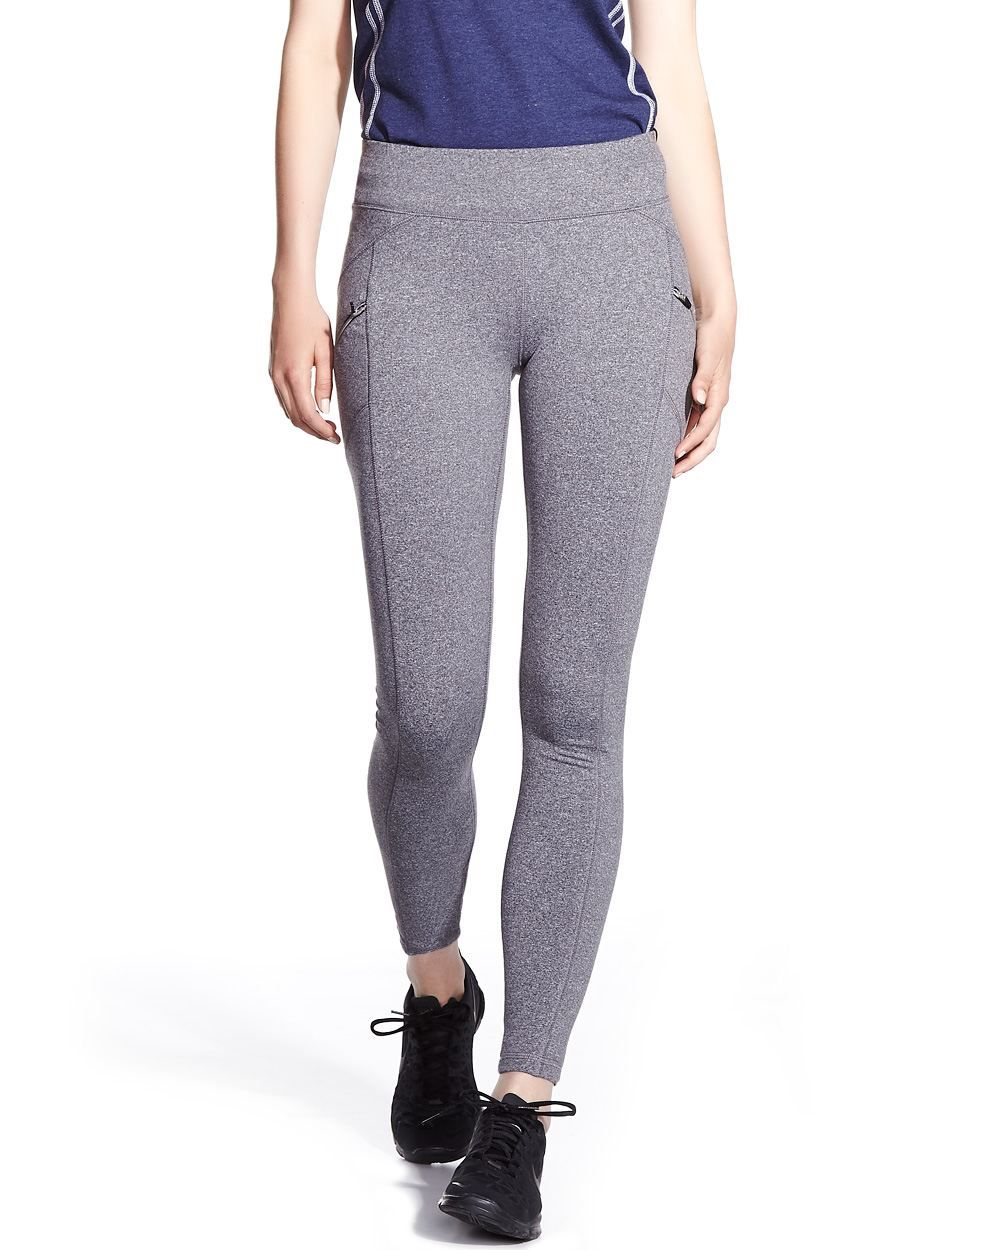 9e5444e2dcd5c2 Hyba Leggings | Yoga and running clothes and other stuff | Leggings ...